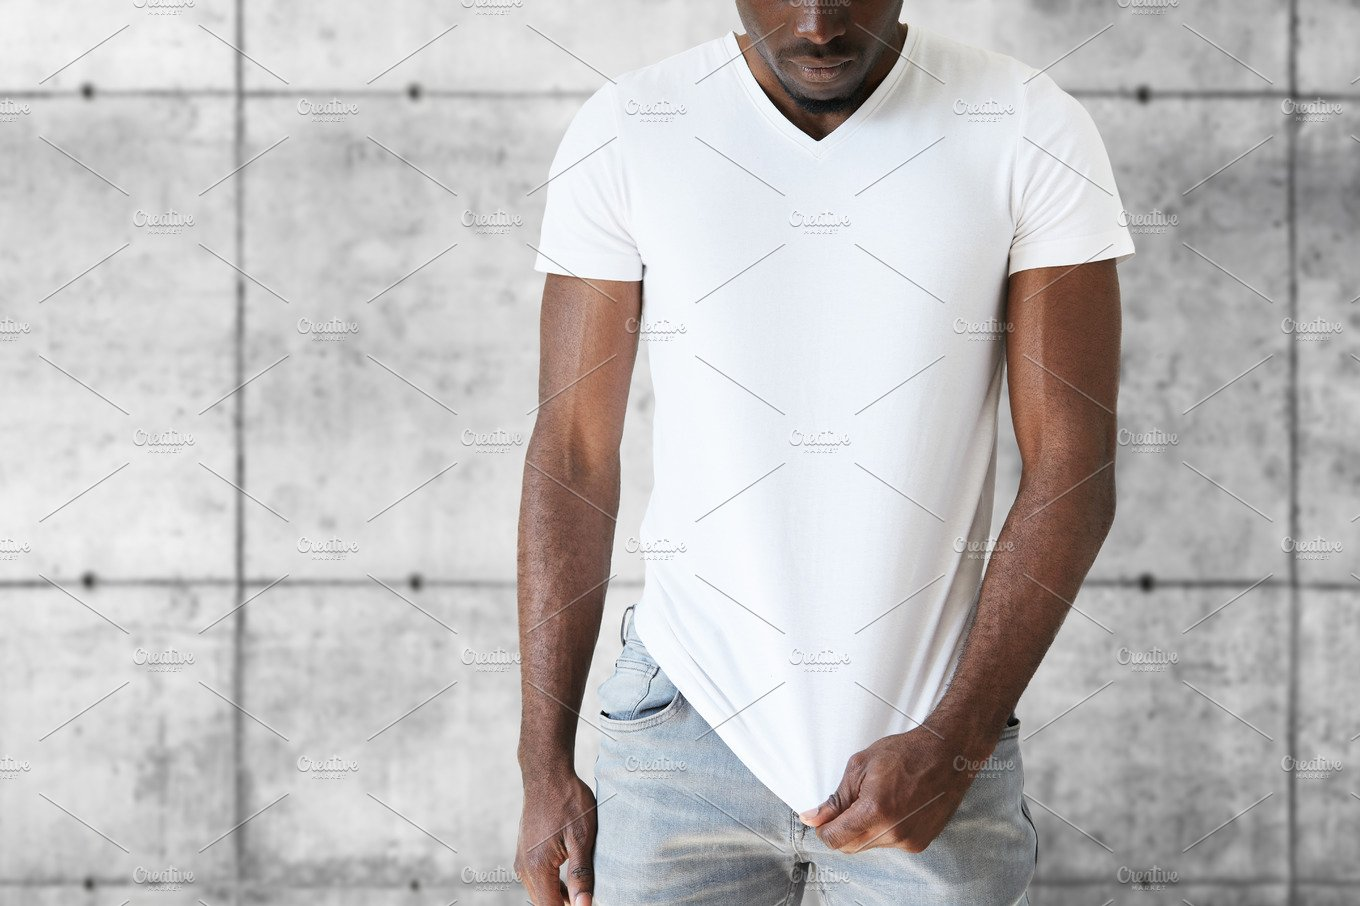 american apparel meet the models template - cropped isolated portrait of athlete african american male